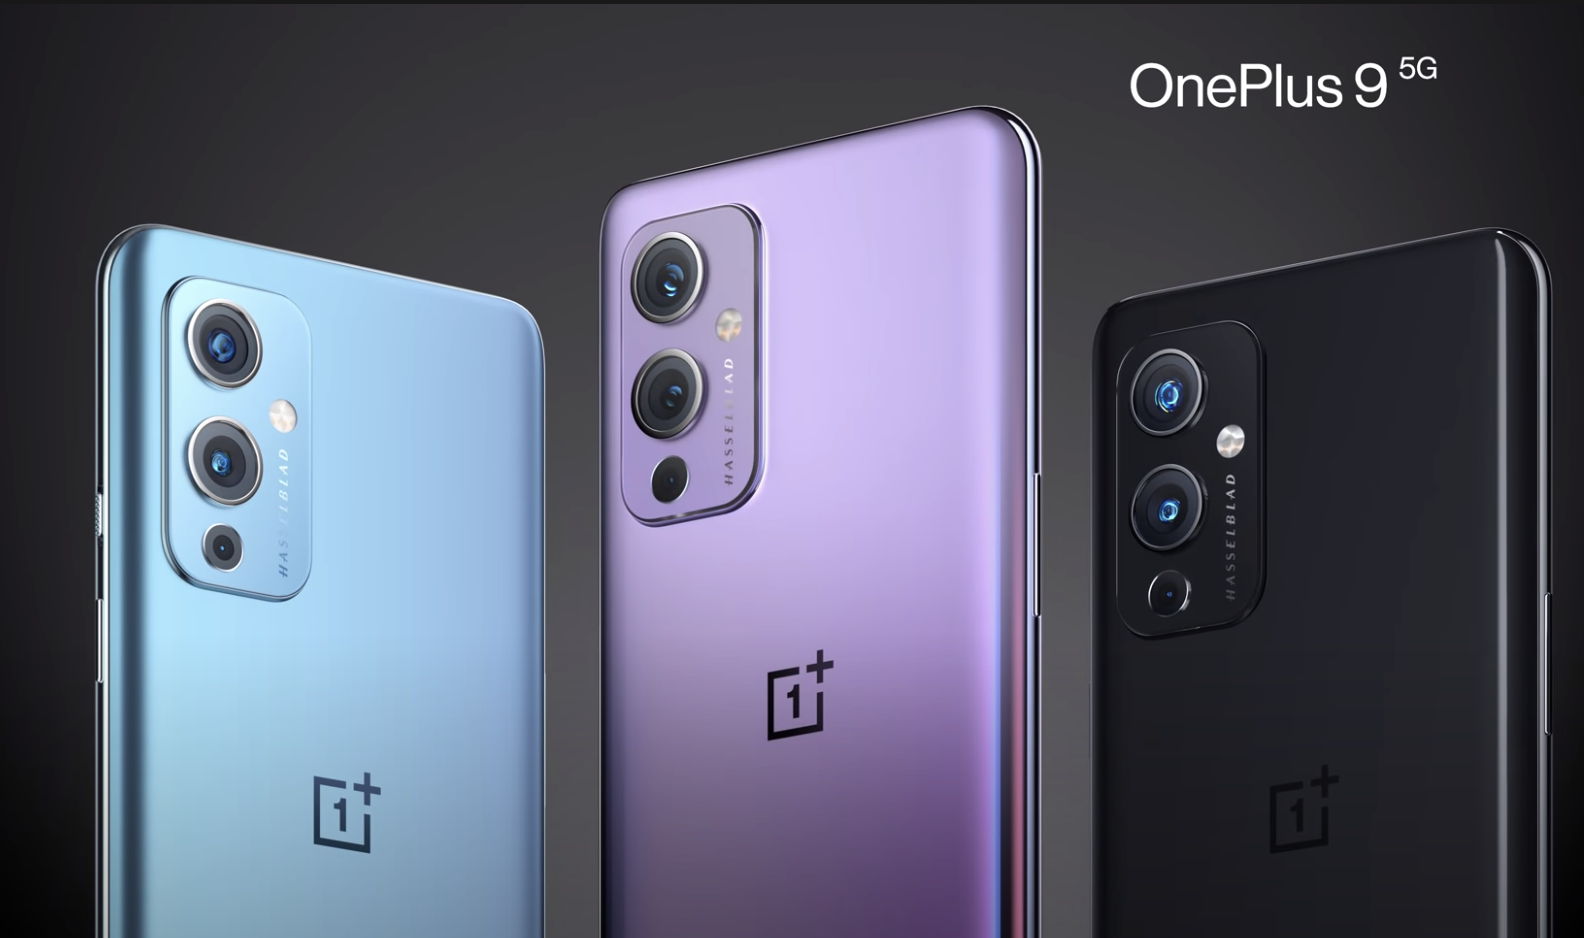 Here's What You Need To Know About The OnePlus 9 & OnePlus 9 Pro